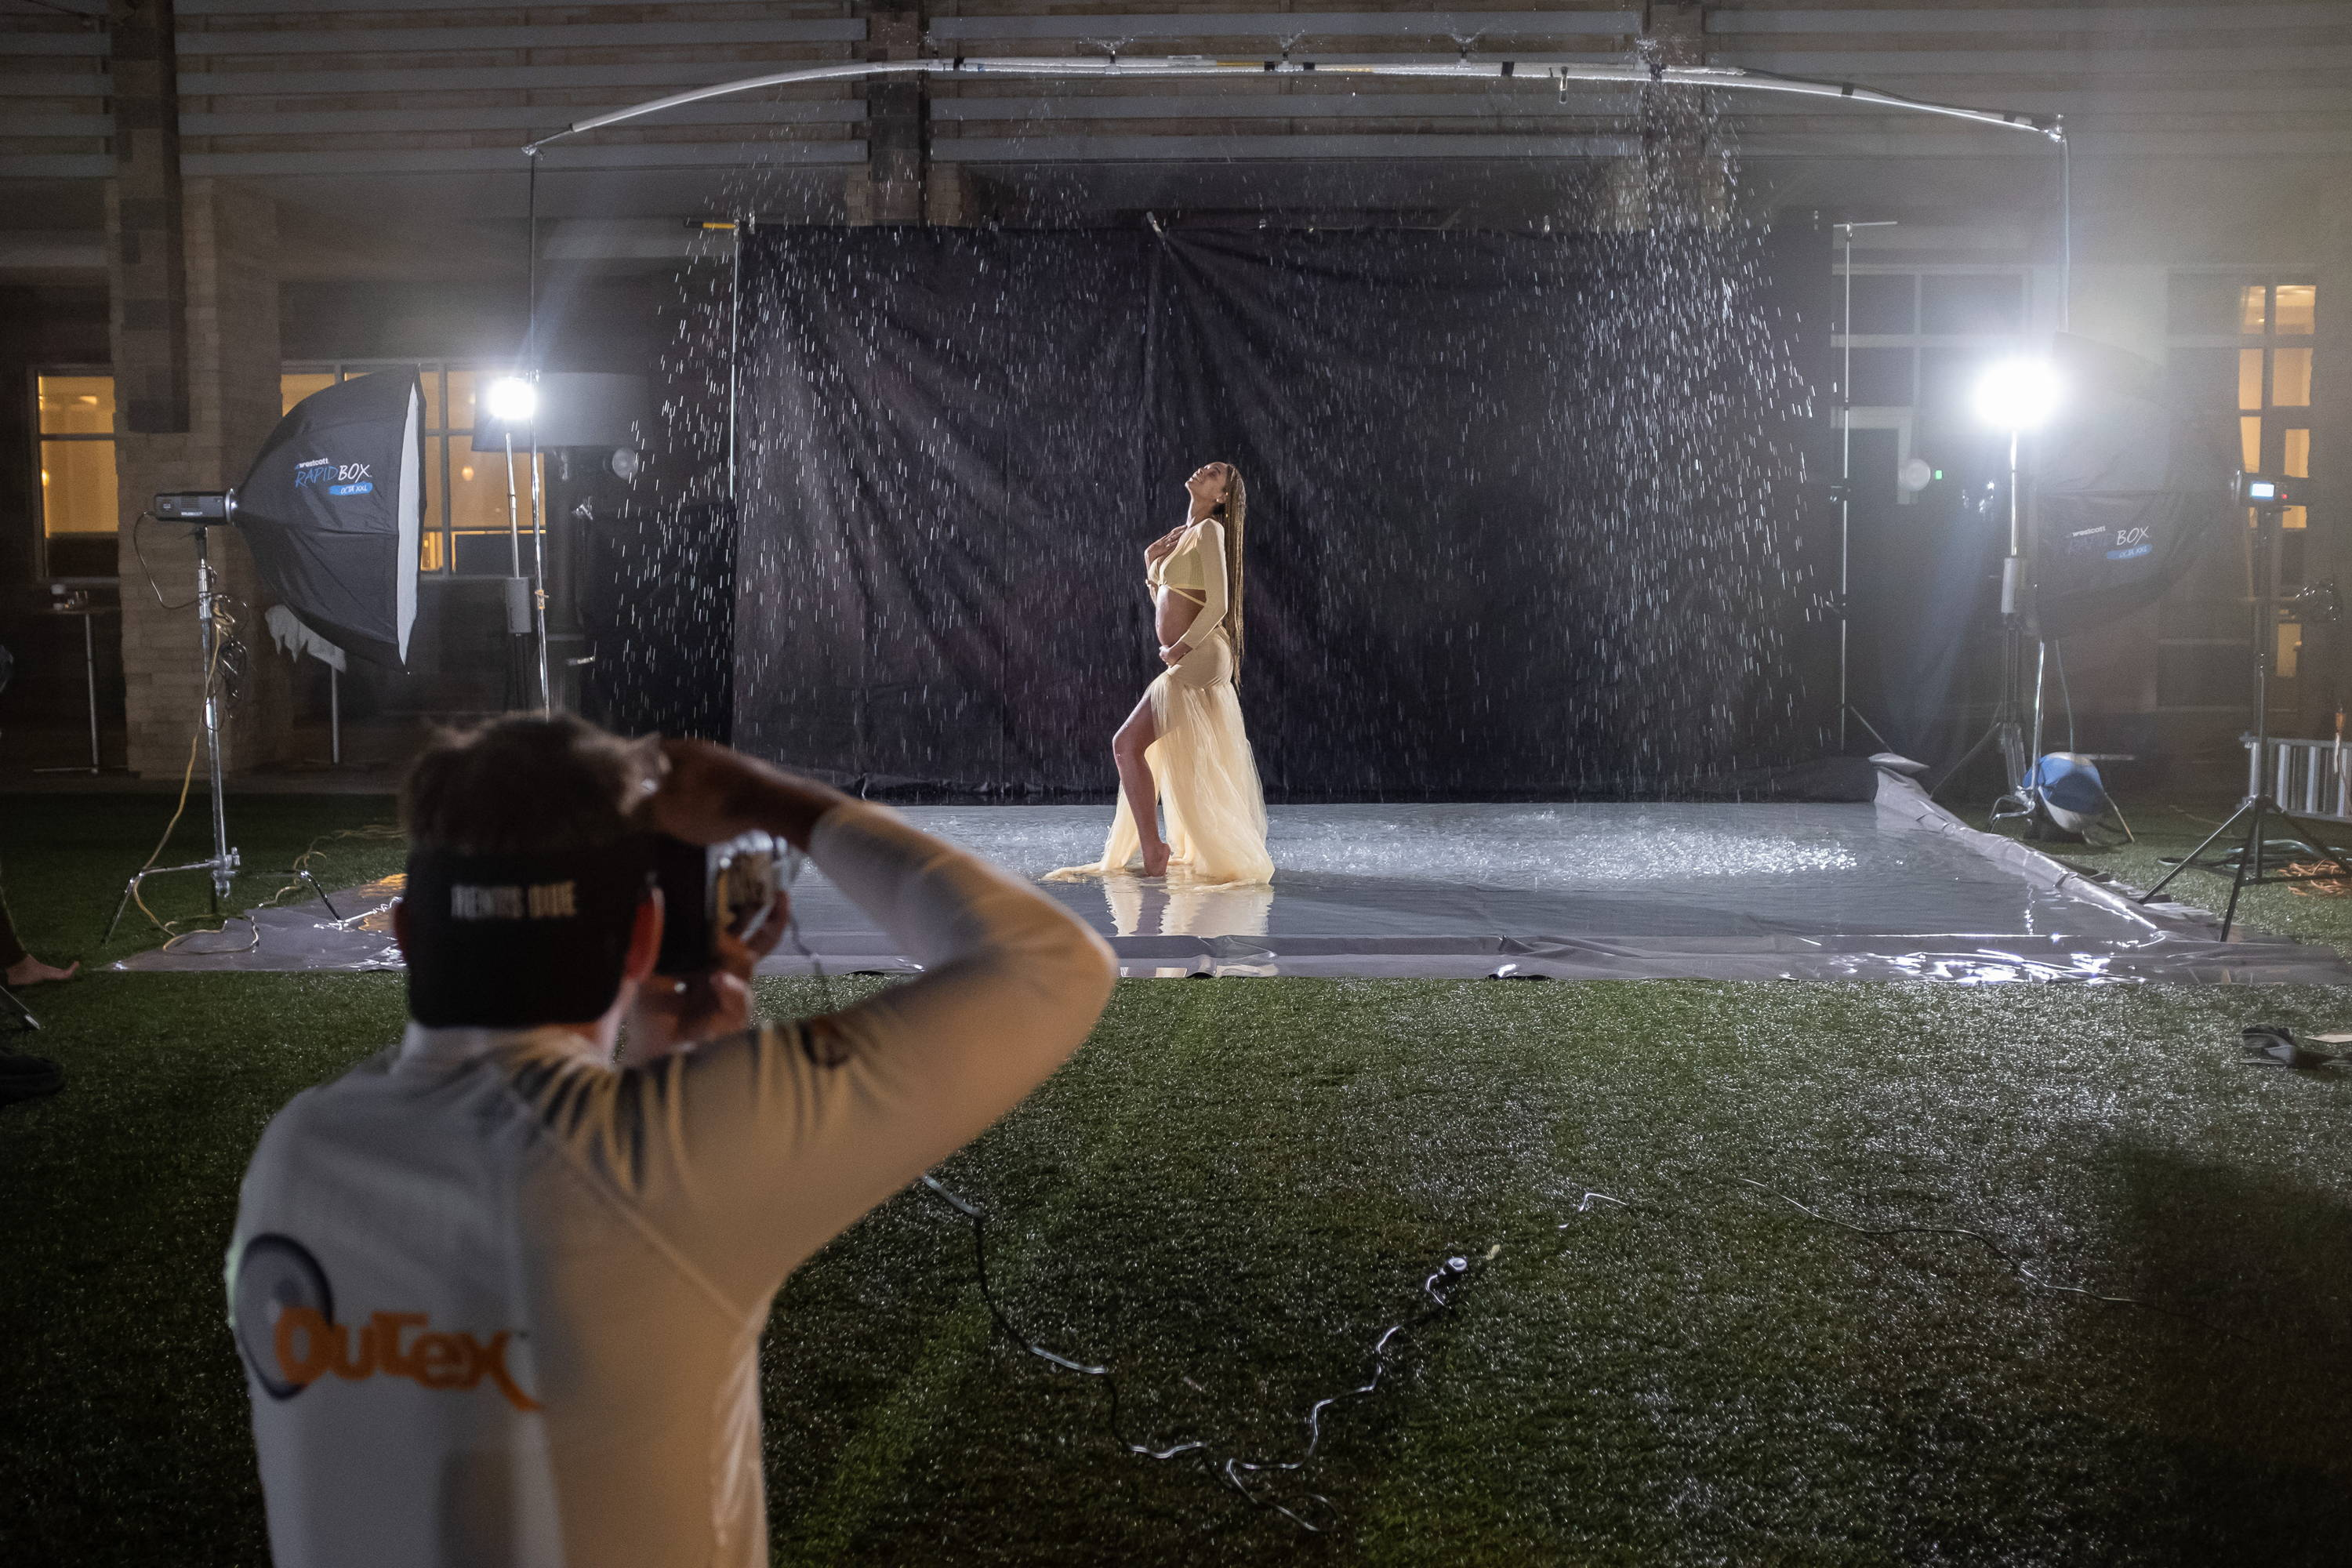 Daniel Woods photographs one of the models. Nomad T56s backlight the rain.